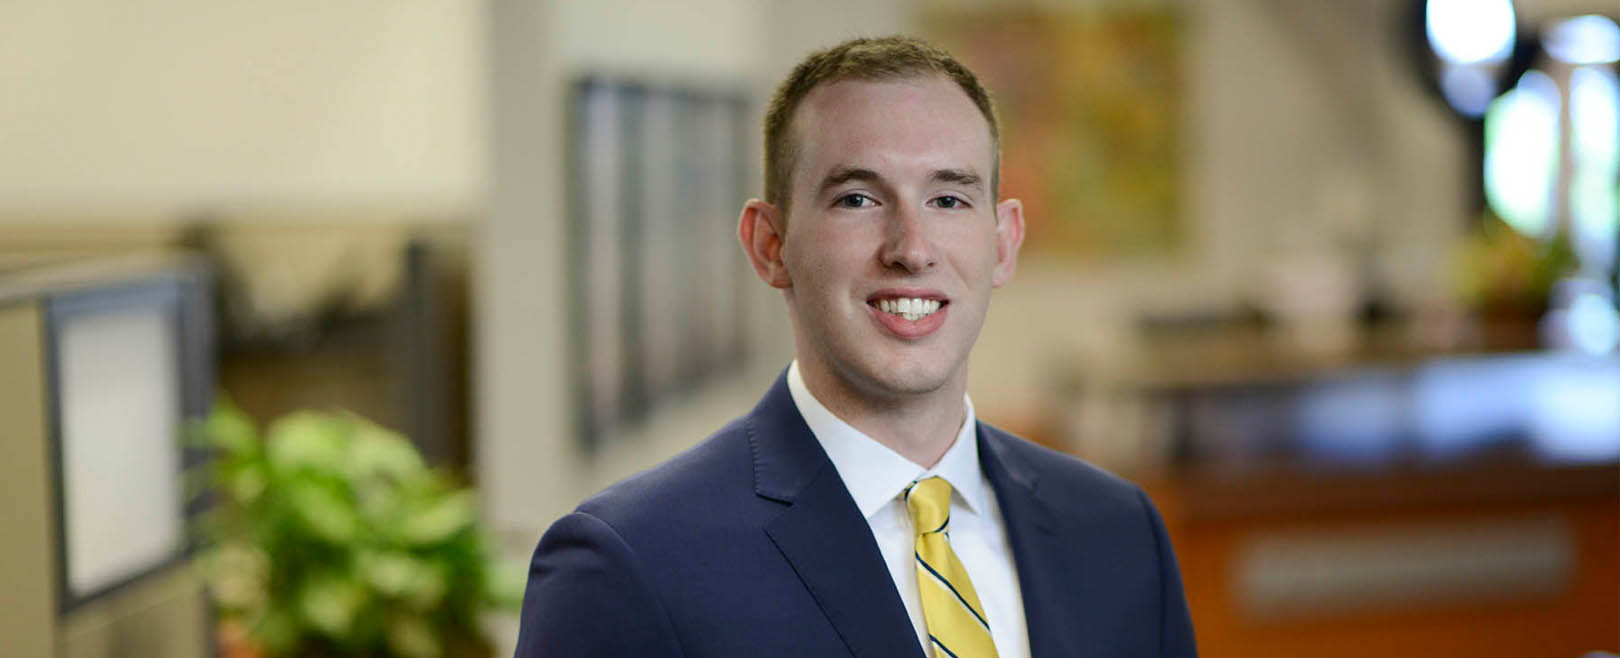 Christopher Smith, Financial Planner Pittsburgh